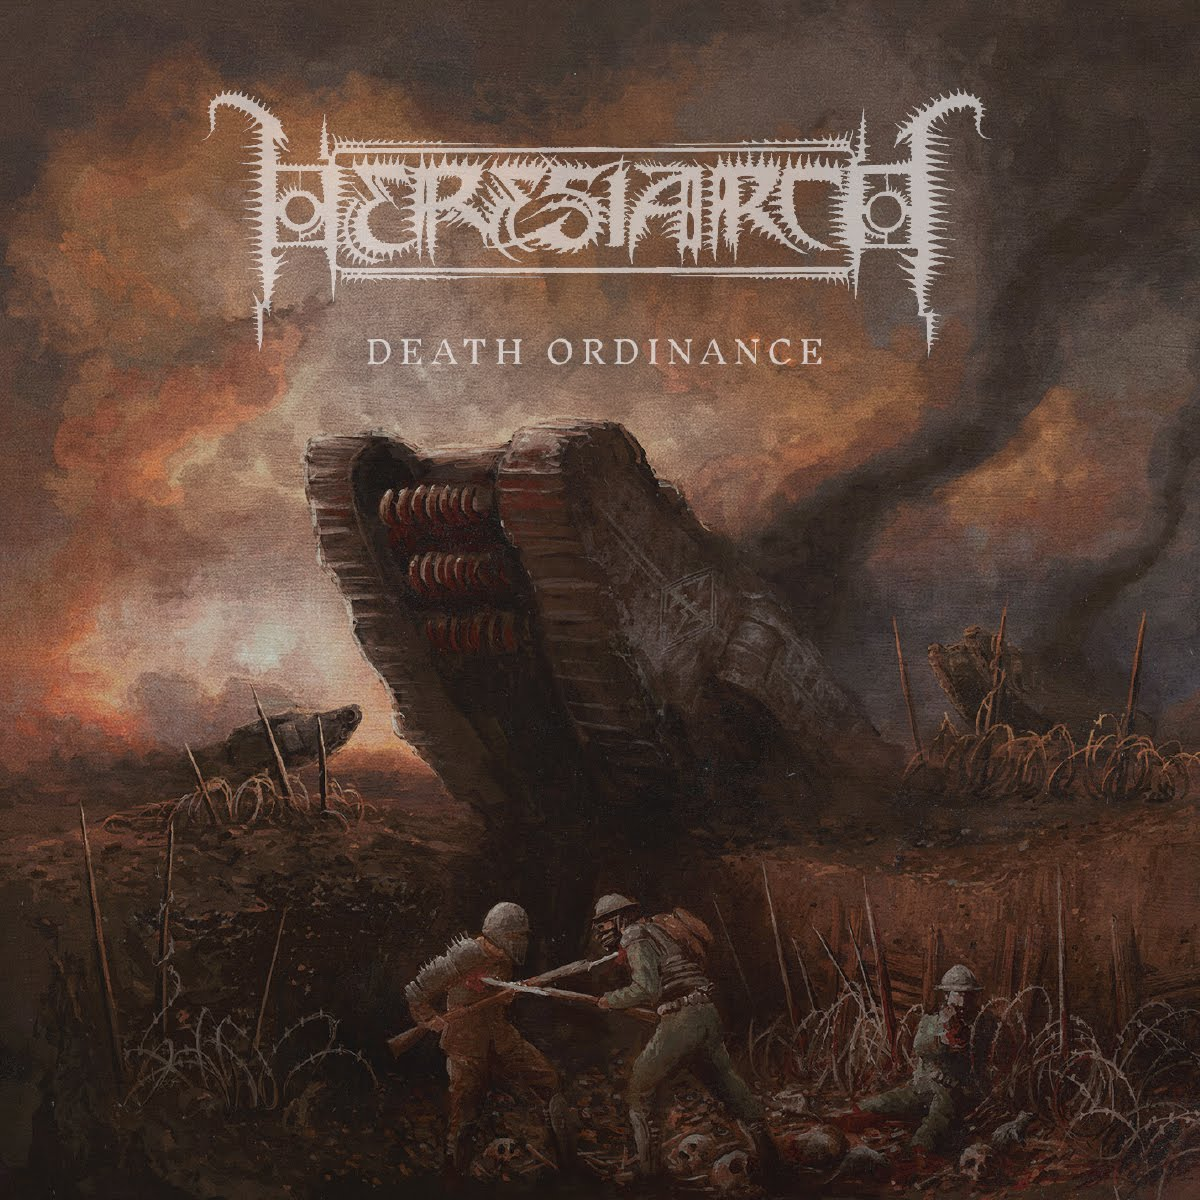 Heresiarch - Death Ordinance Review and Full Album Stream.